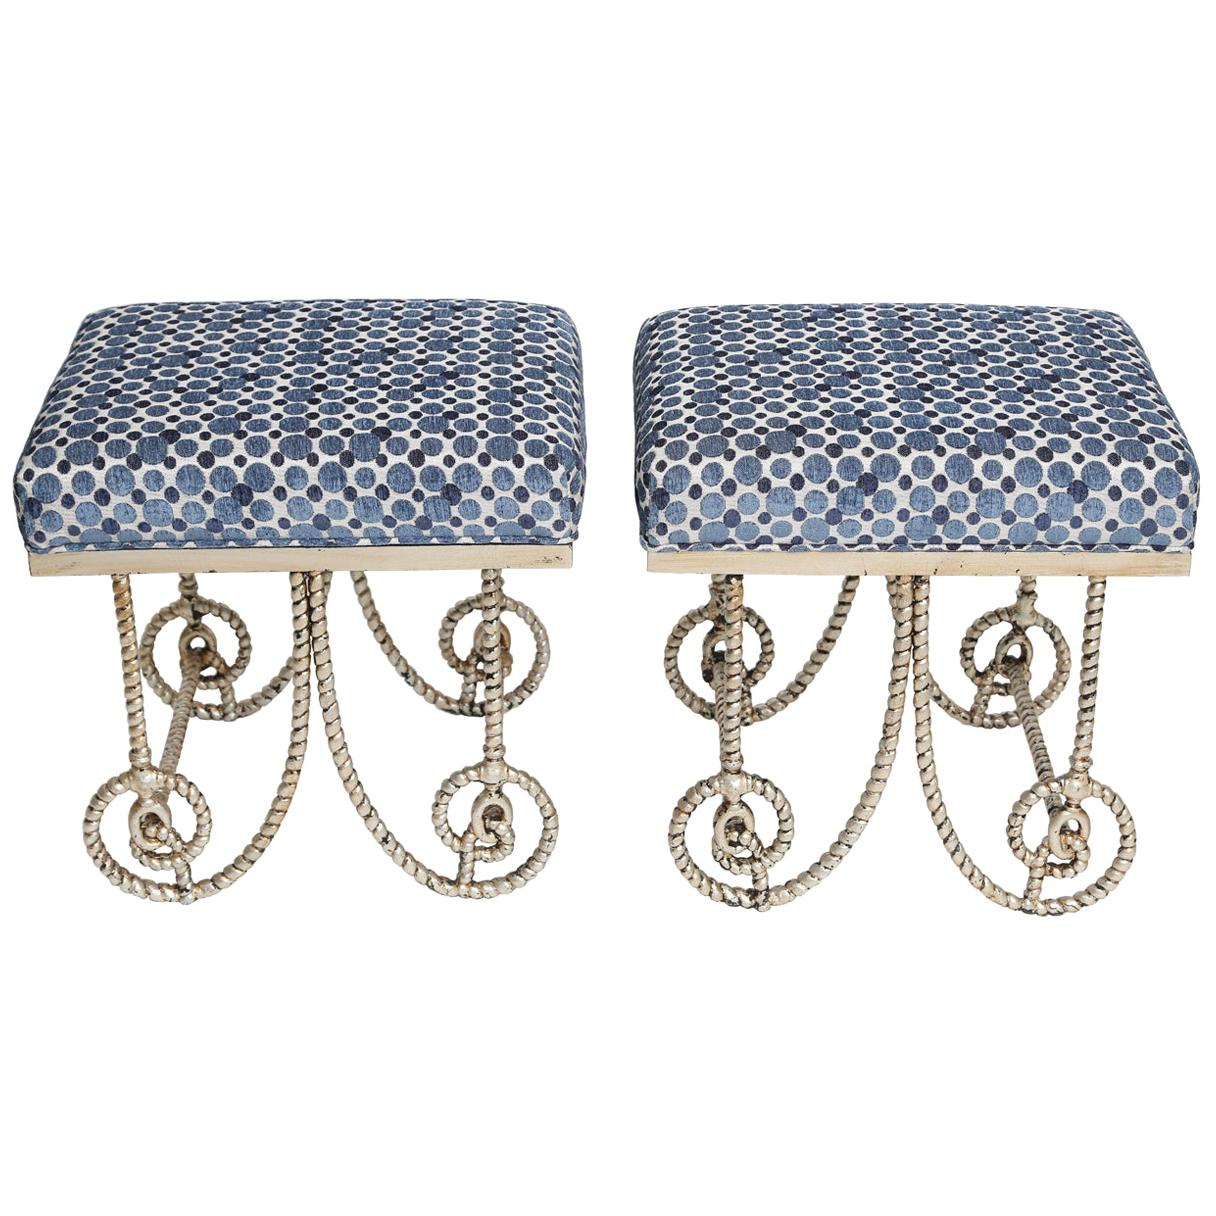 Pair of Silvergilt Metal Benches with Scrolling Legs